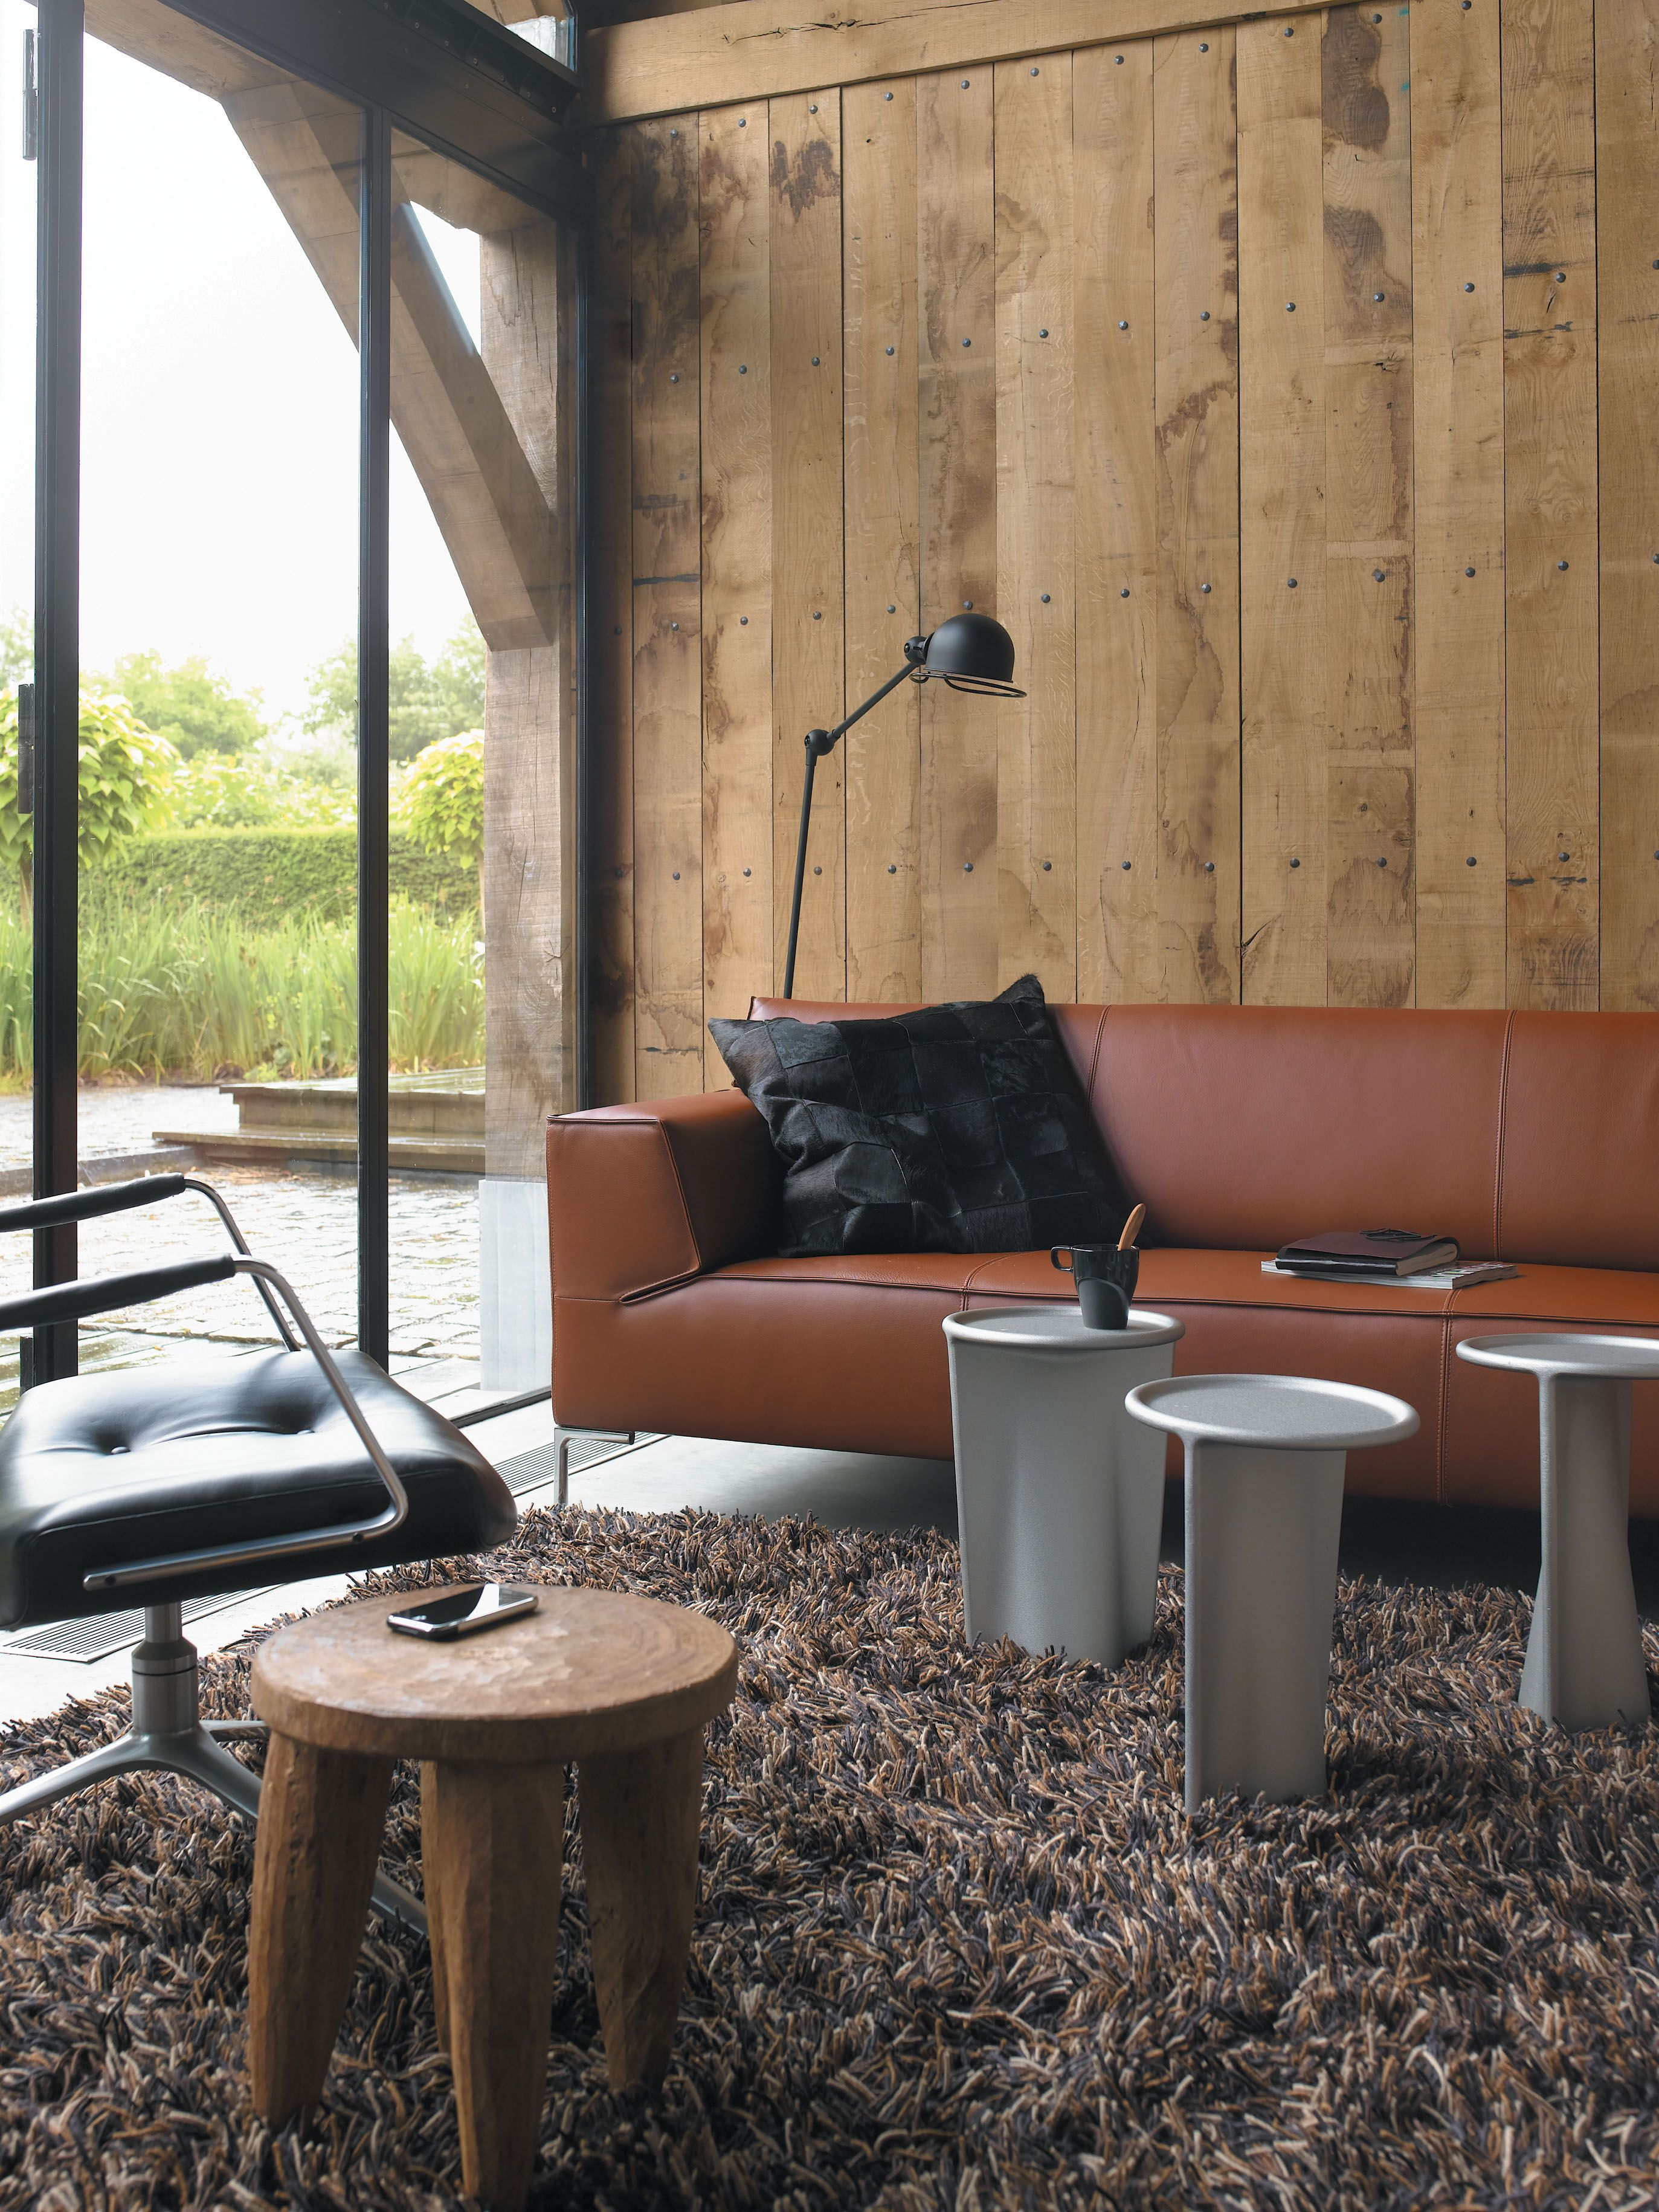 Design On Stock Bloq Fauteuil.Bloq Sofa By Roderick Vos Shown In Basque 32 Rust